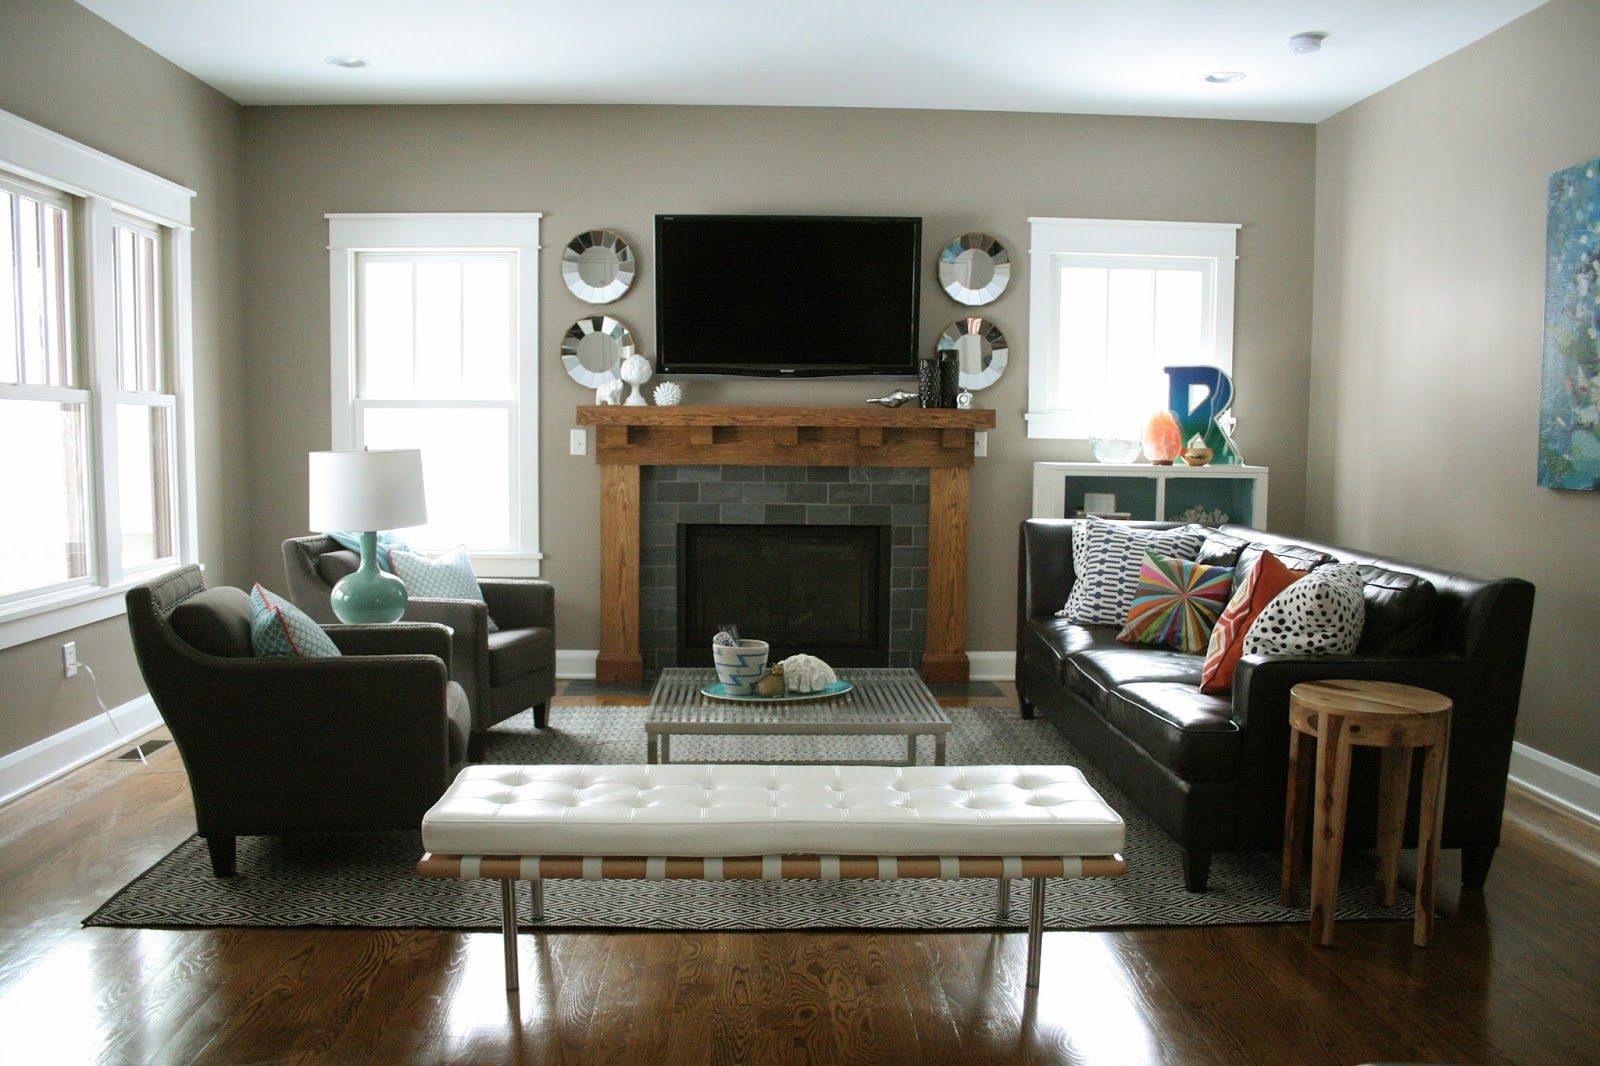 Living Room Ideas With Sectionals And Fireplace layout #4 uses just the larger part of our sectional, opposite our